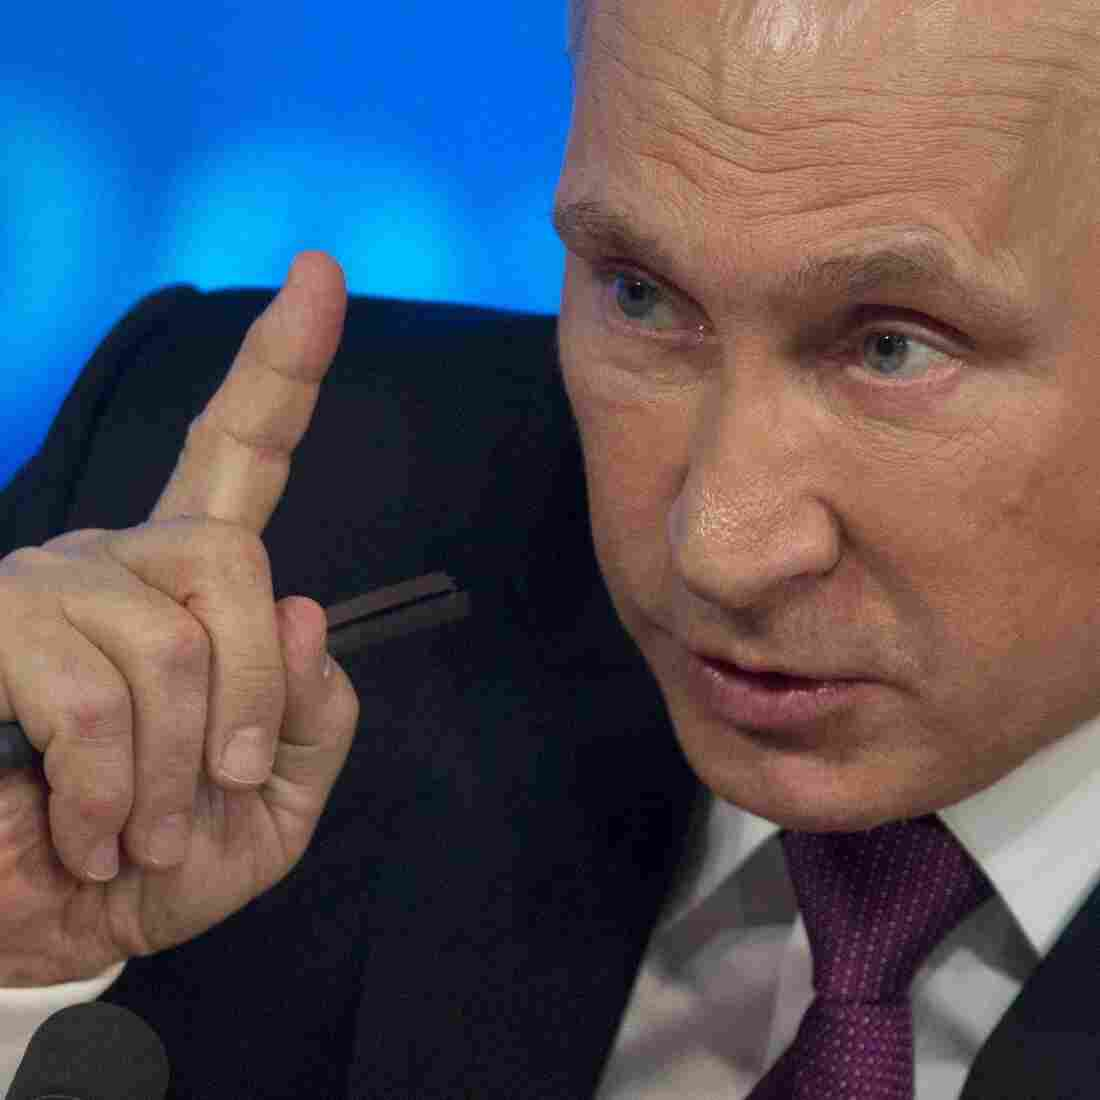 Russian President Vladimir Putin at his annual news conference in Moscow on Thursday, where he blamed Western sanctions and falling oil prices for his country's economic troubles.